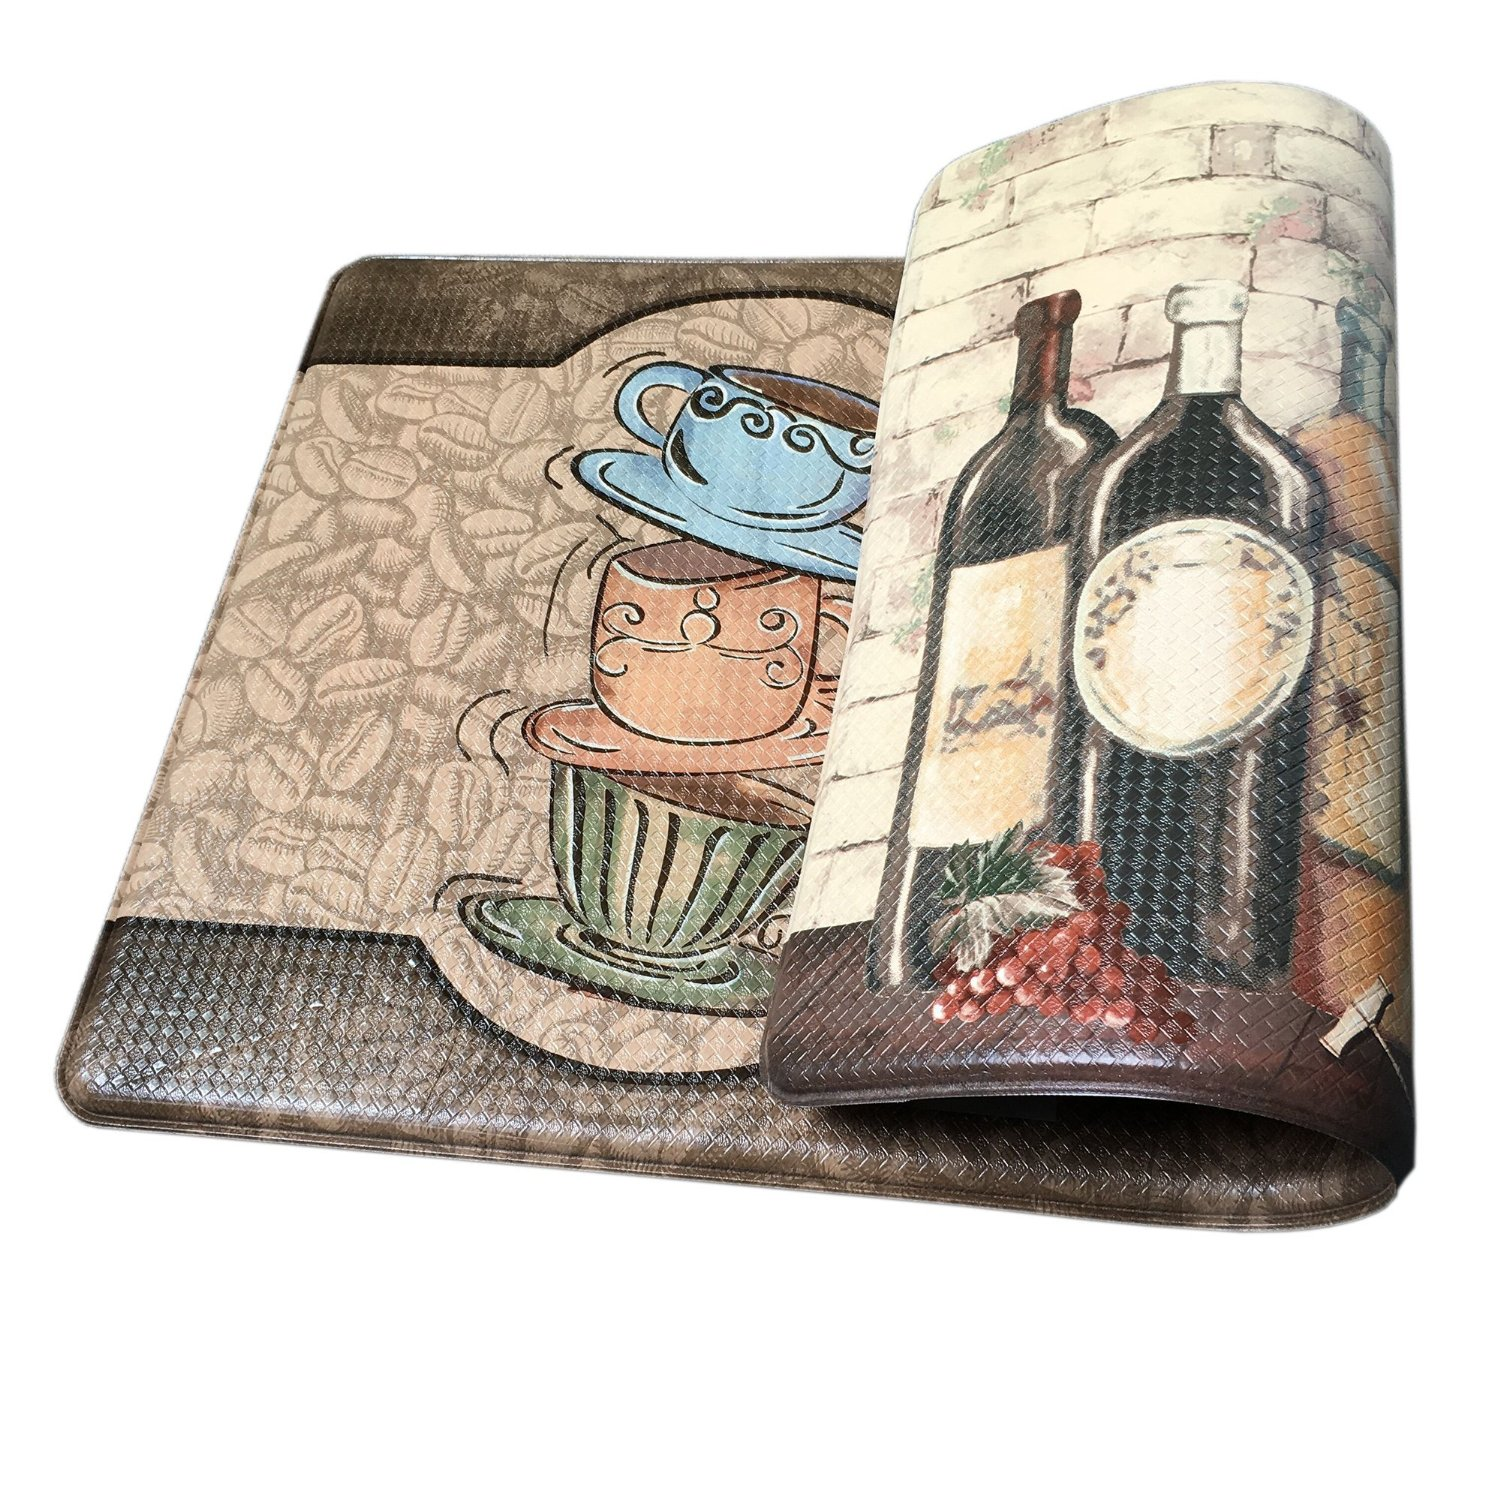 Y20713 - Anti-Slip Anti-Fatigue Memory Form Kitchen Comfort Mat, 18\